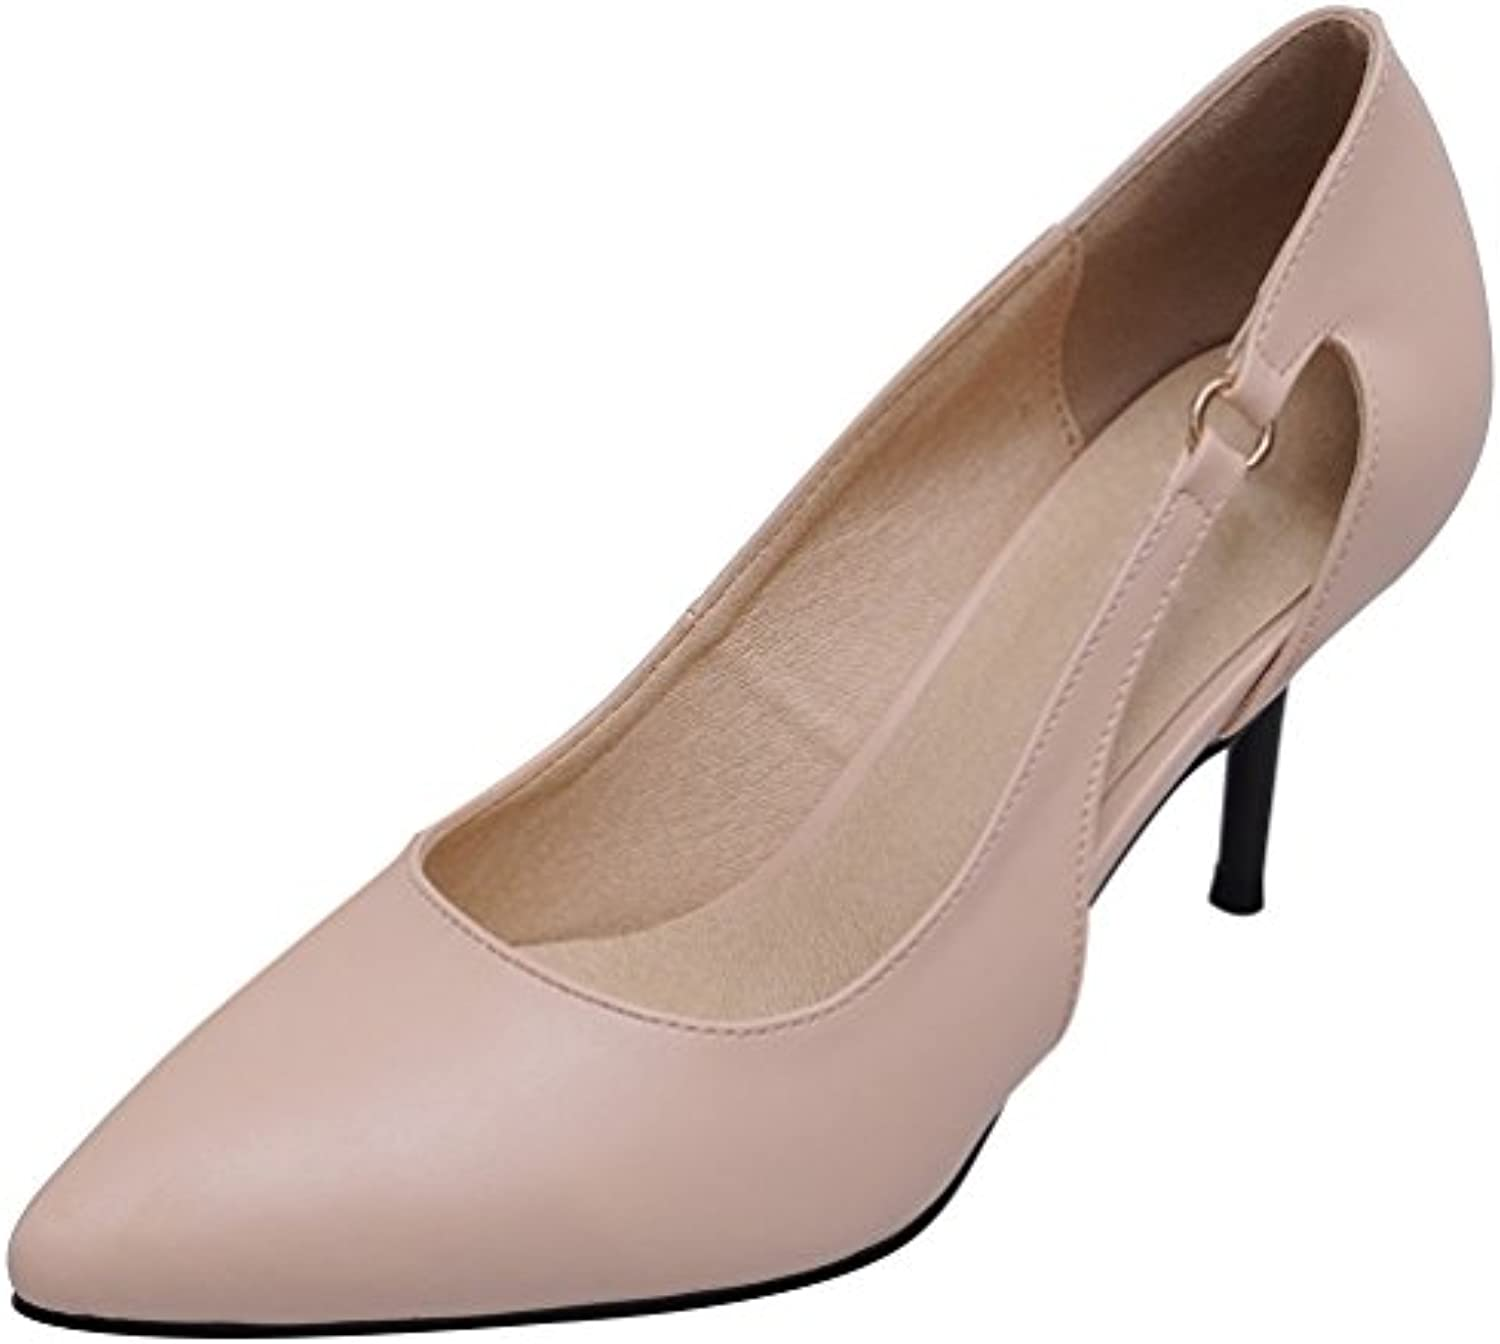 b0712fe7f43a Salabobo 1073 ladies Hollow OL OL OL Comfort Work Wedding Bride Bridesmaid  Party Job Pointed Toe Stiletto Cone Heeled... B0756YBYD4 Parent 33c9e0